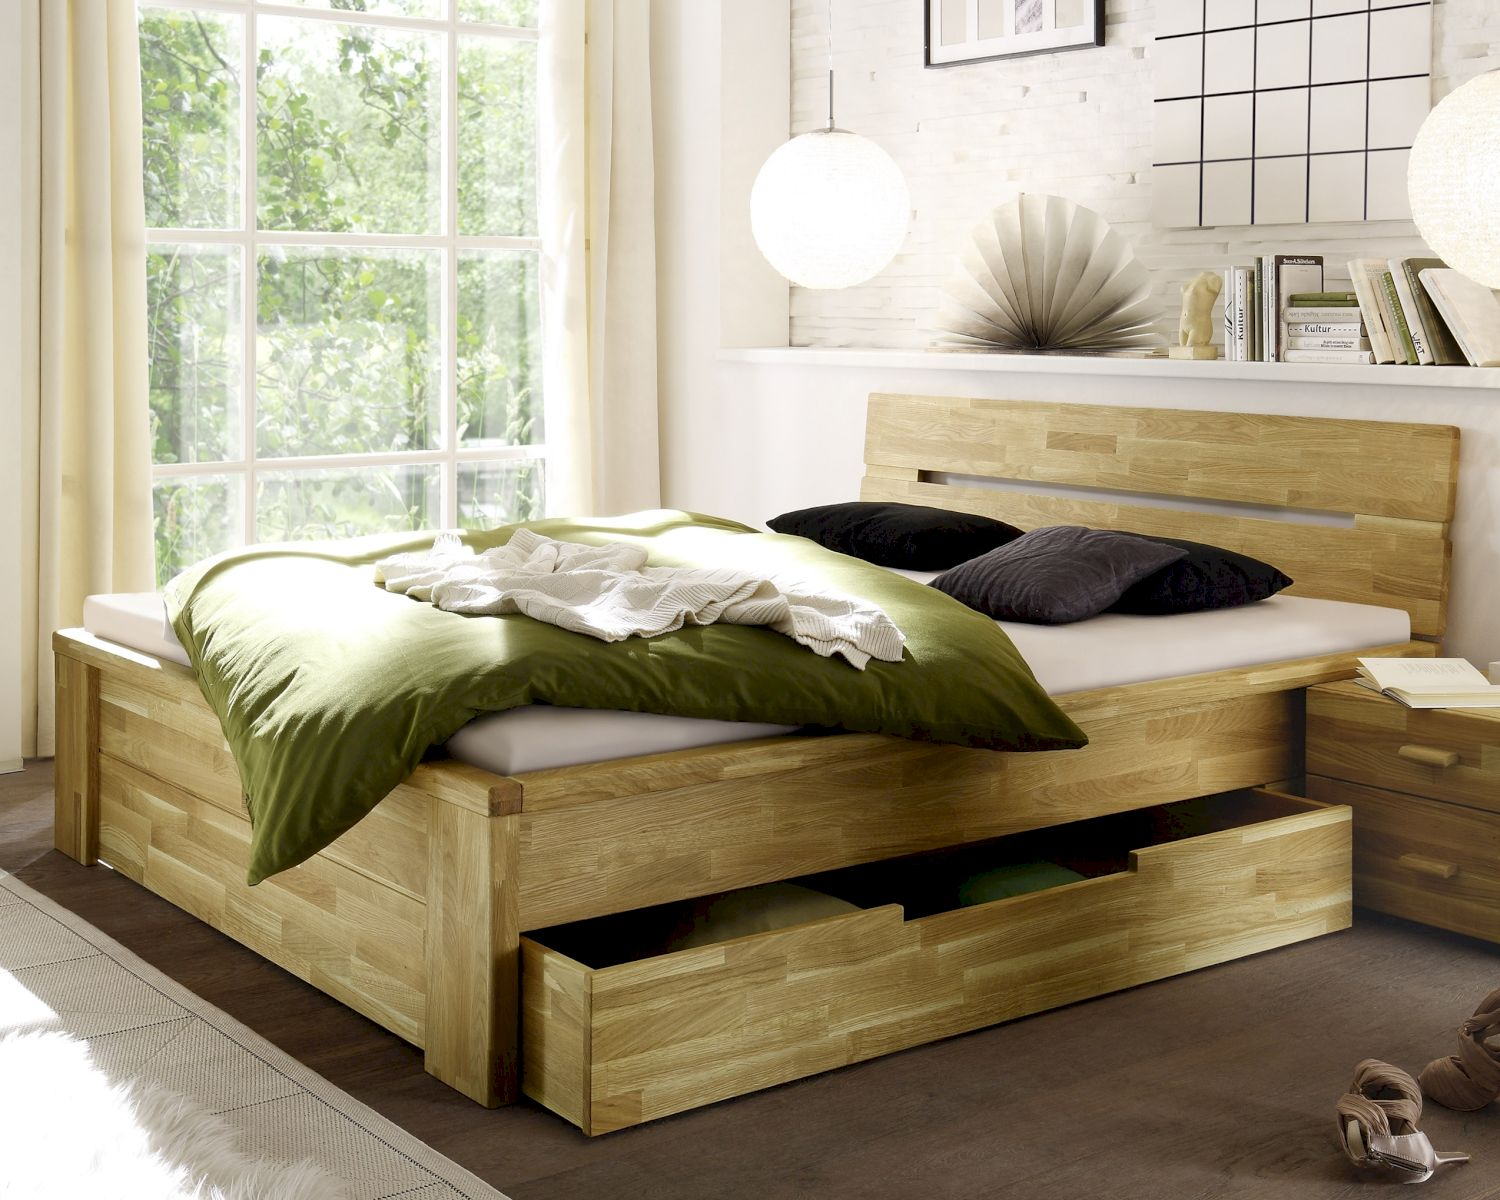 woodlive bett cassetta mit schublade wildeiche. Black Bedroom Furniture Sets. Home Design Ideas